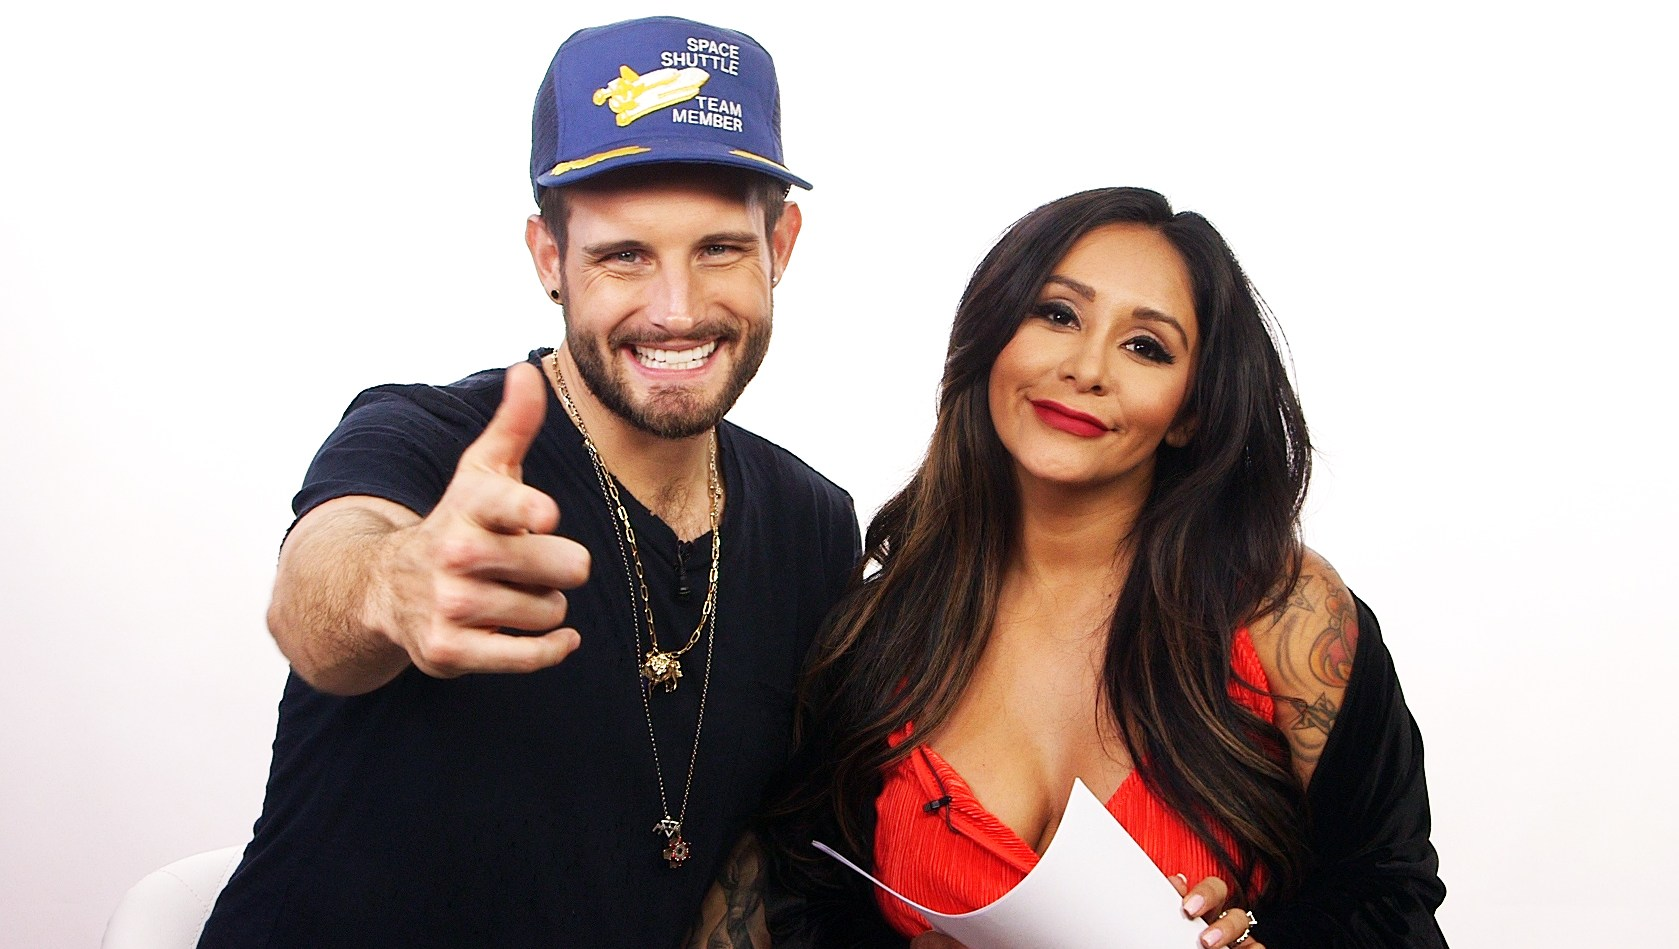 Nico Tortorella Snooki Celebrity Tattoos